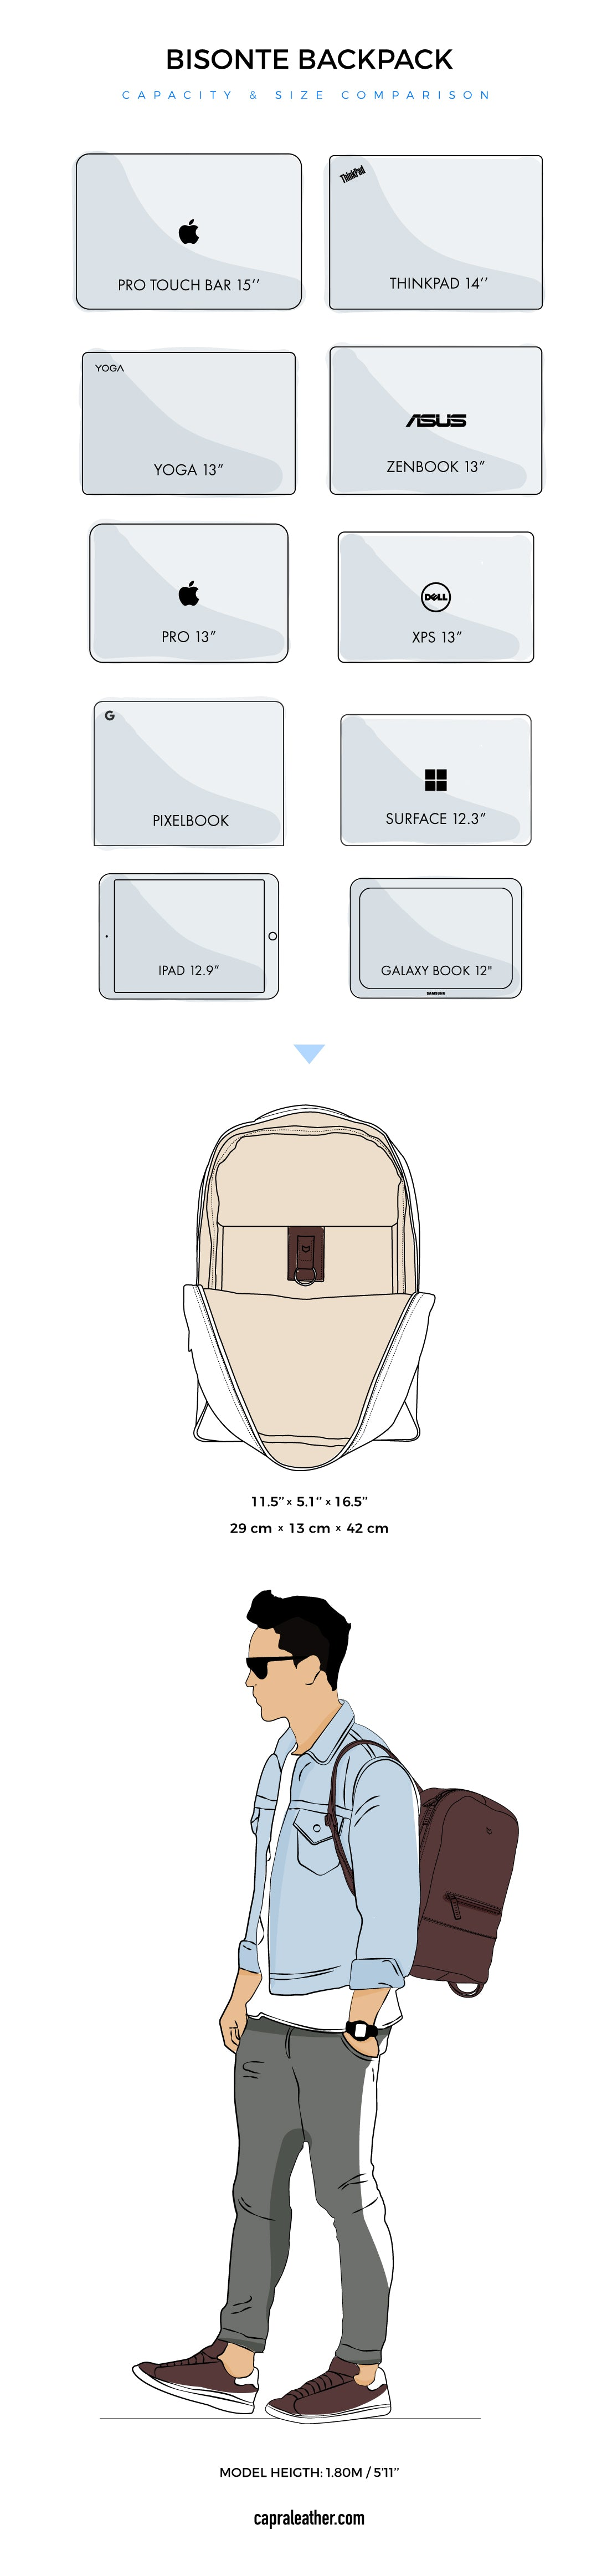 Bisonte Leather Backpack Size Chart